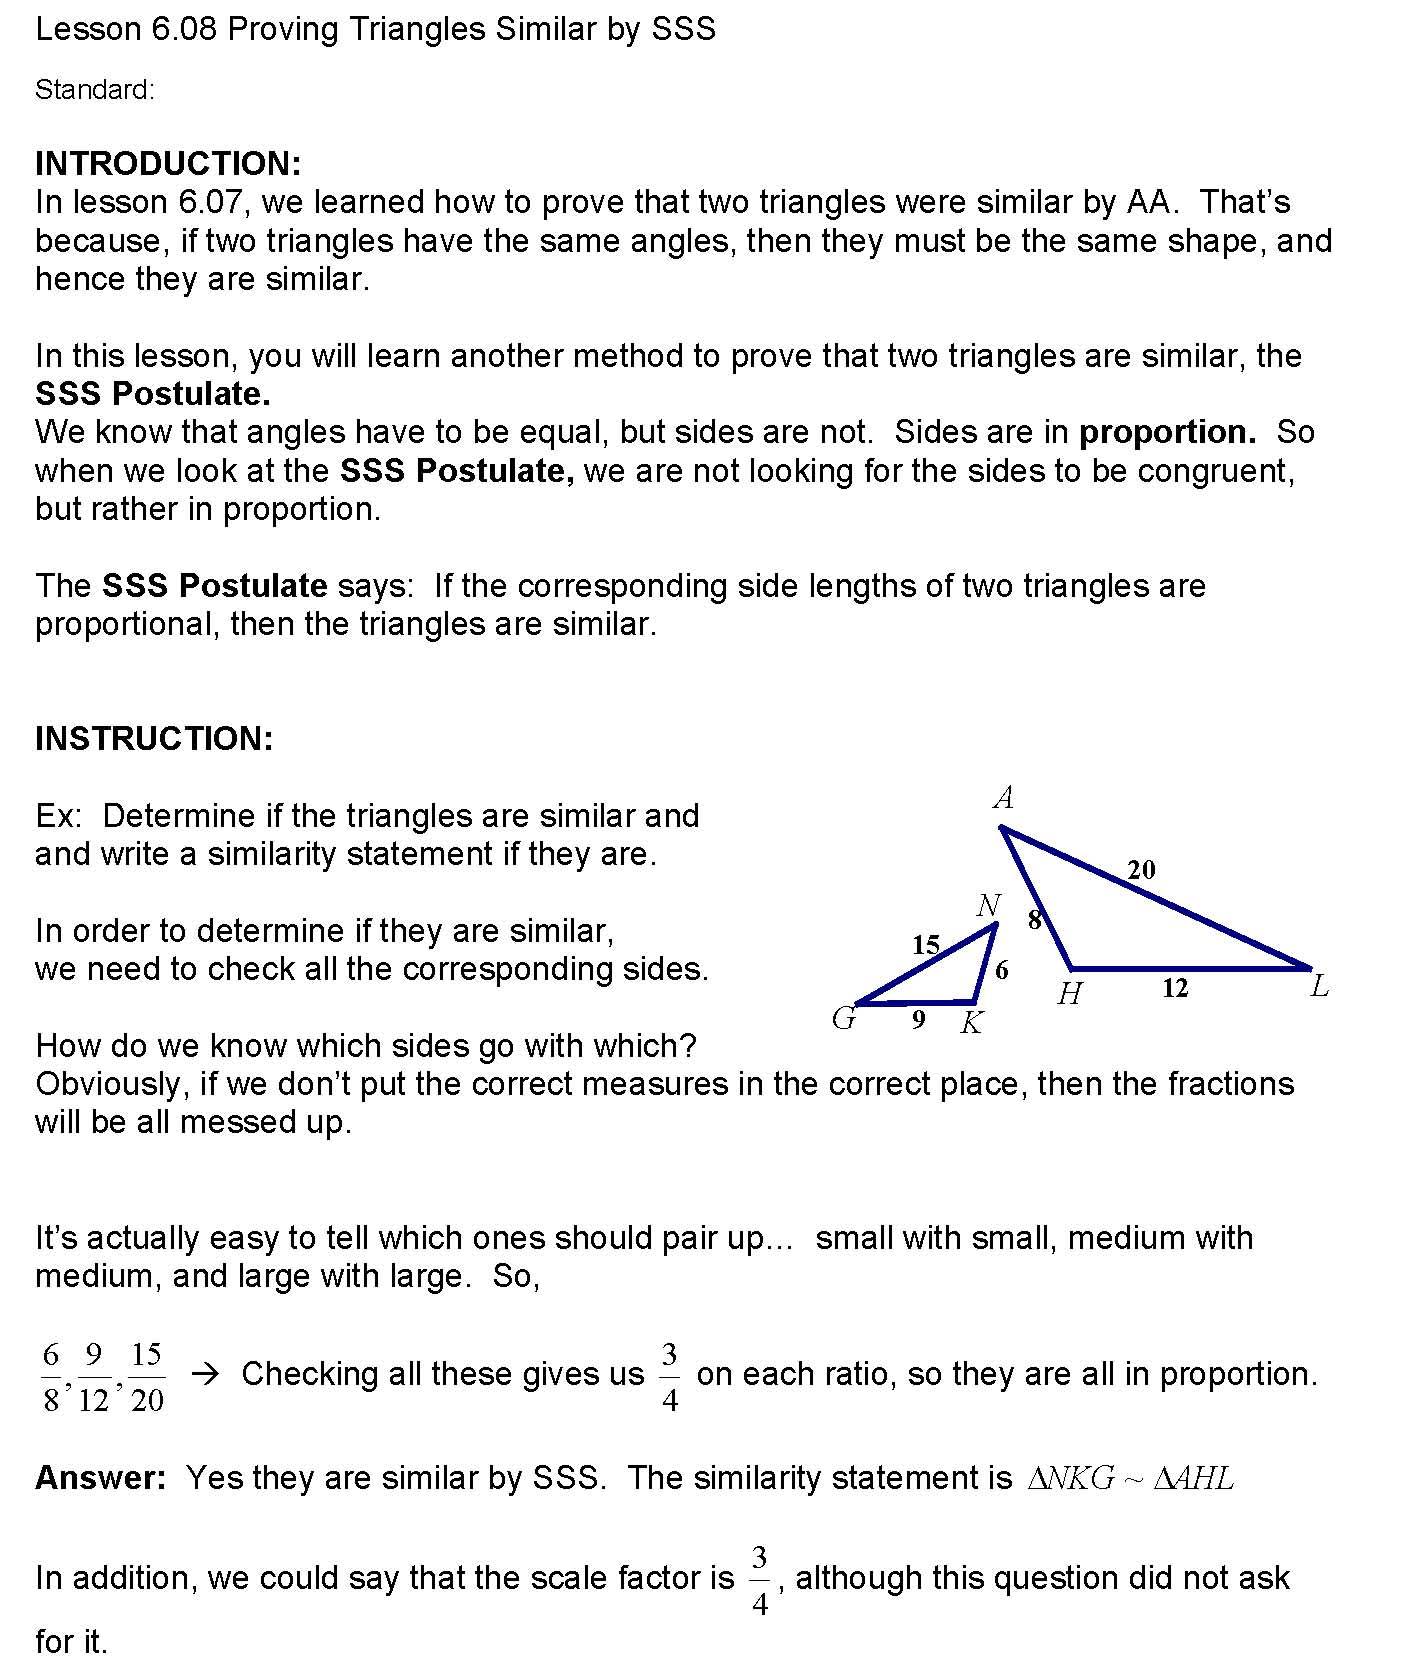 Cosgeometry Lesson 6 08 Proving Triangles Similar By Sss